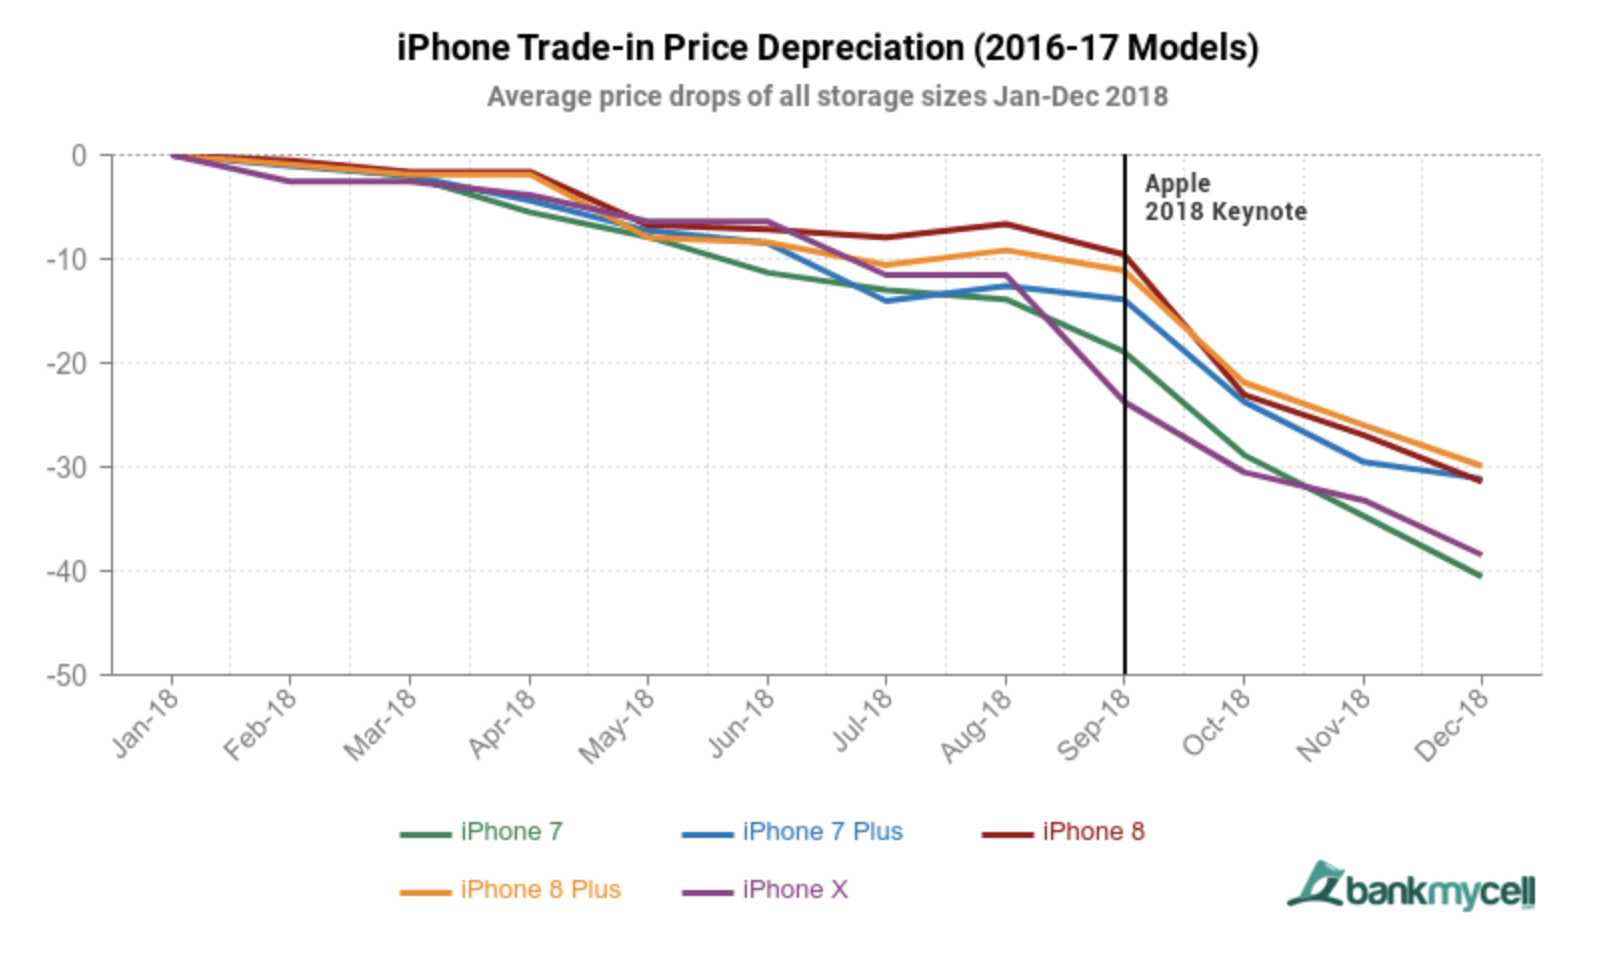 Apple's build quality and software support help iPhones retain value much longer than Androids